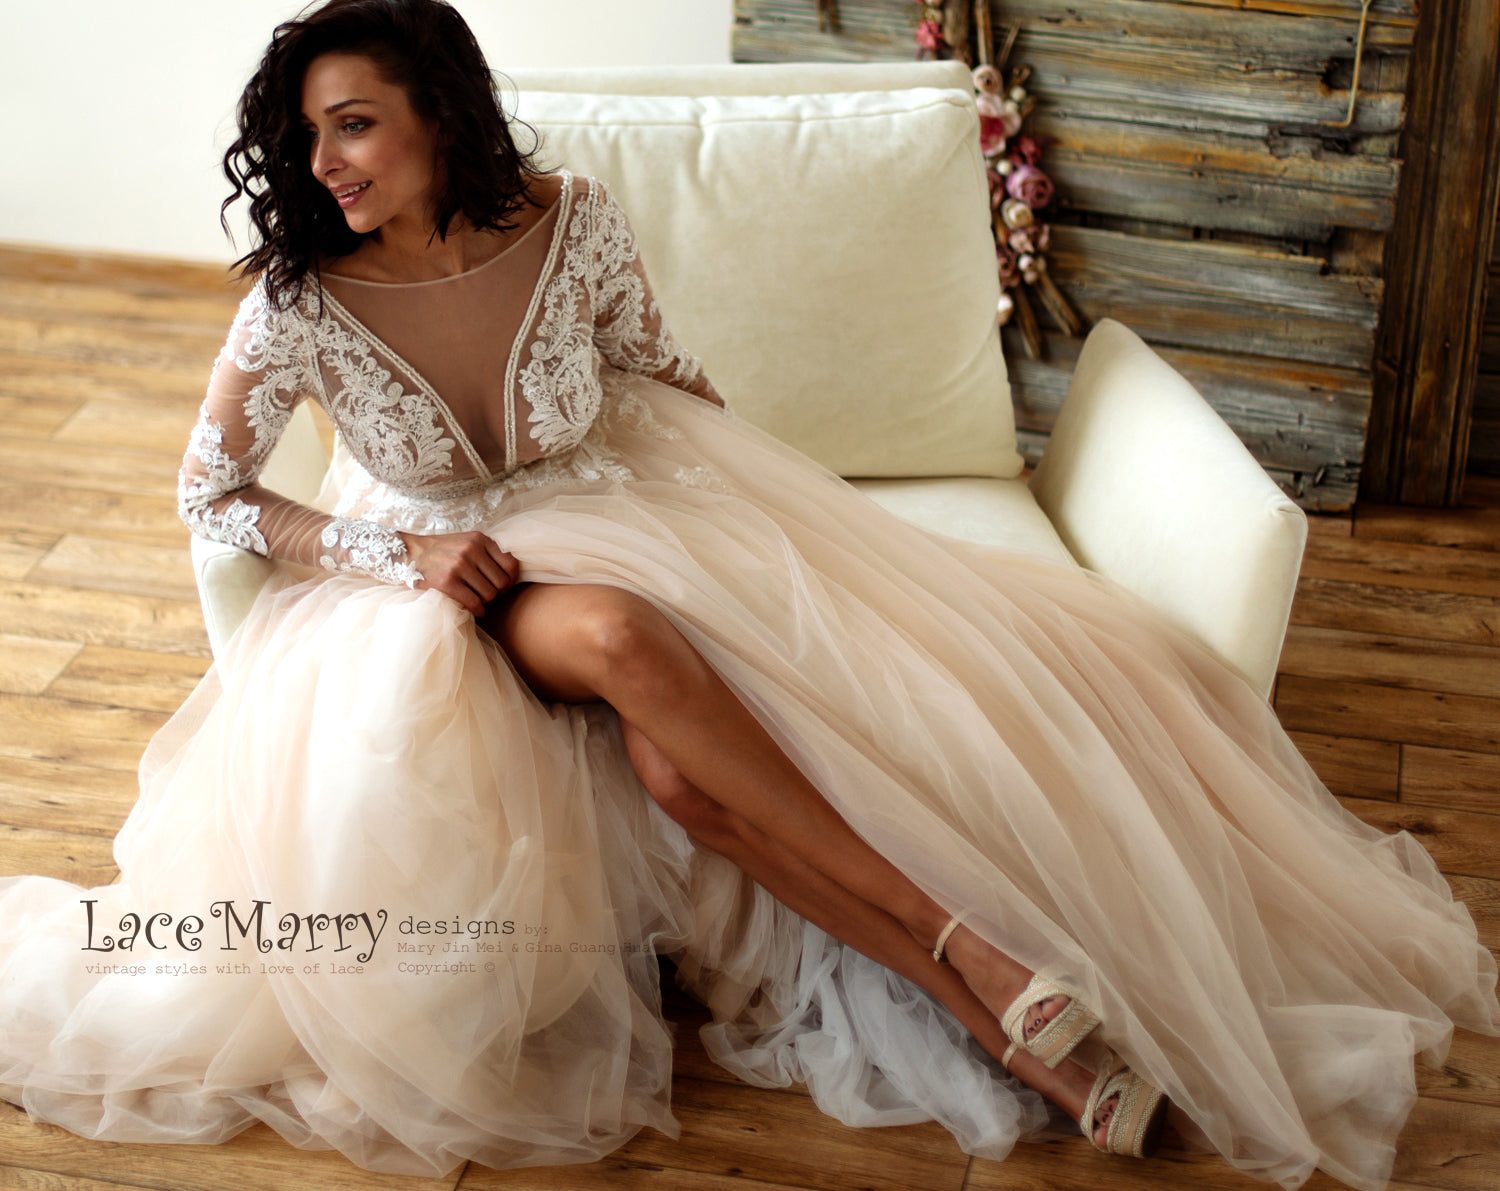 Deluxe Lace Wedding Dress in Nude Tulle and Ivory Applique